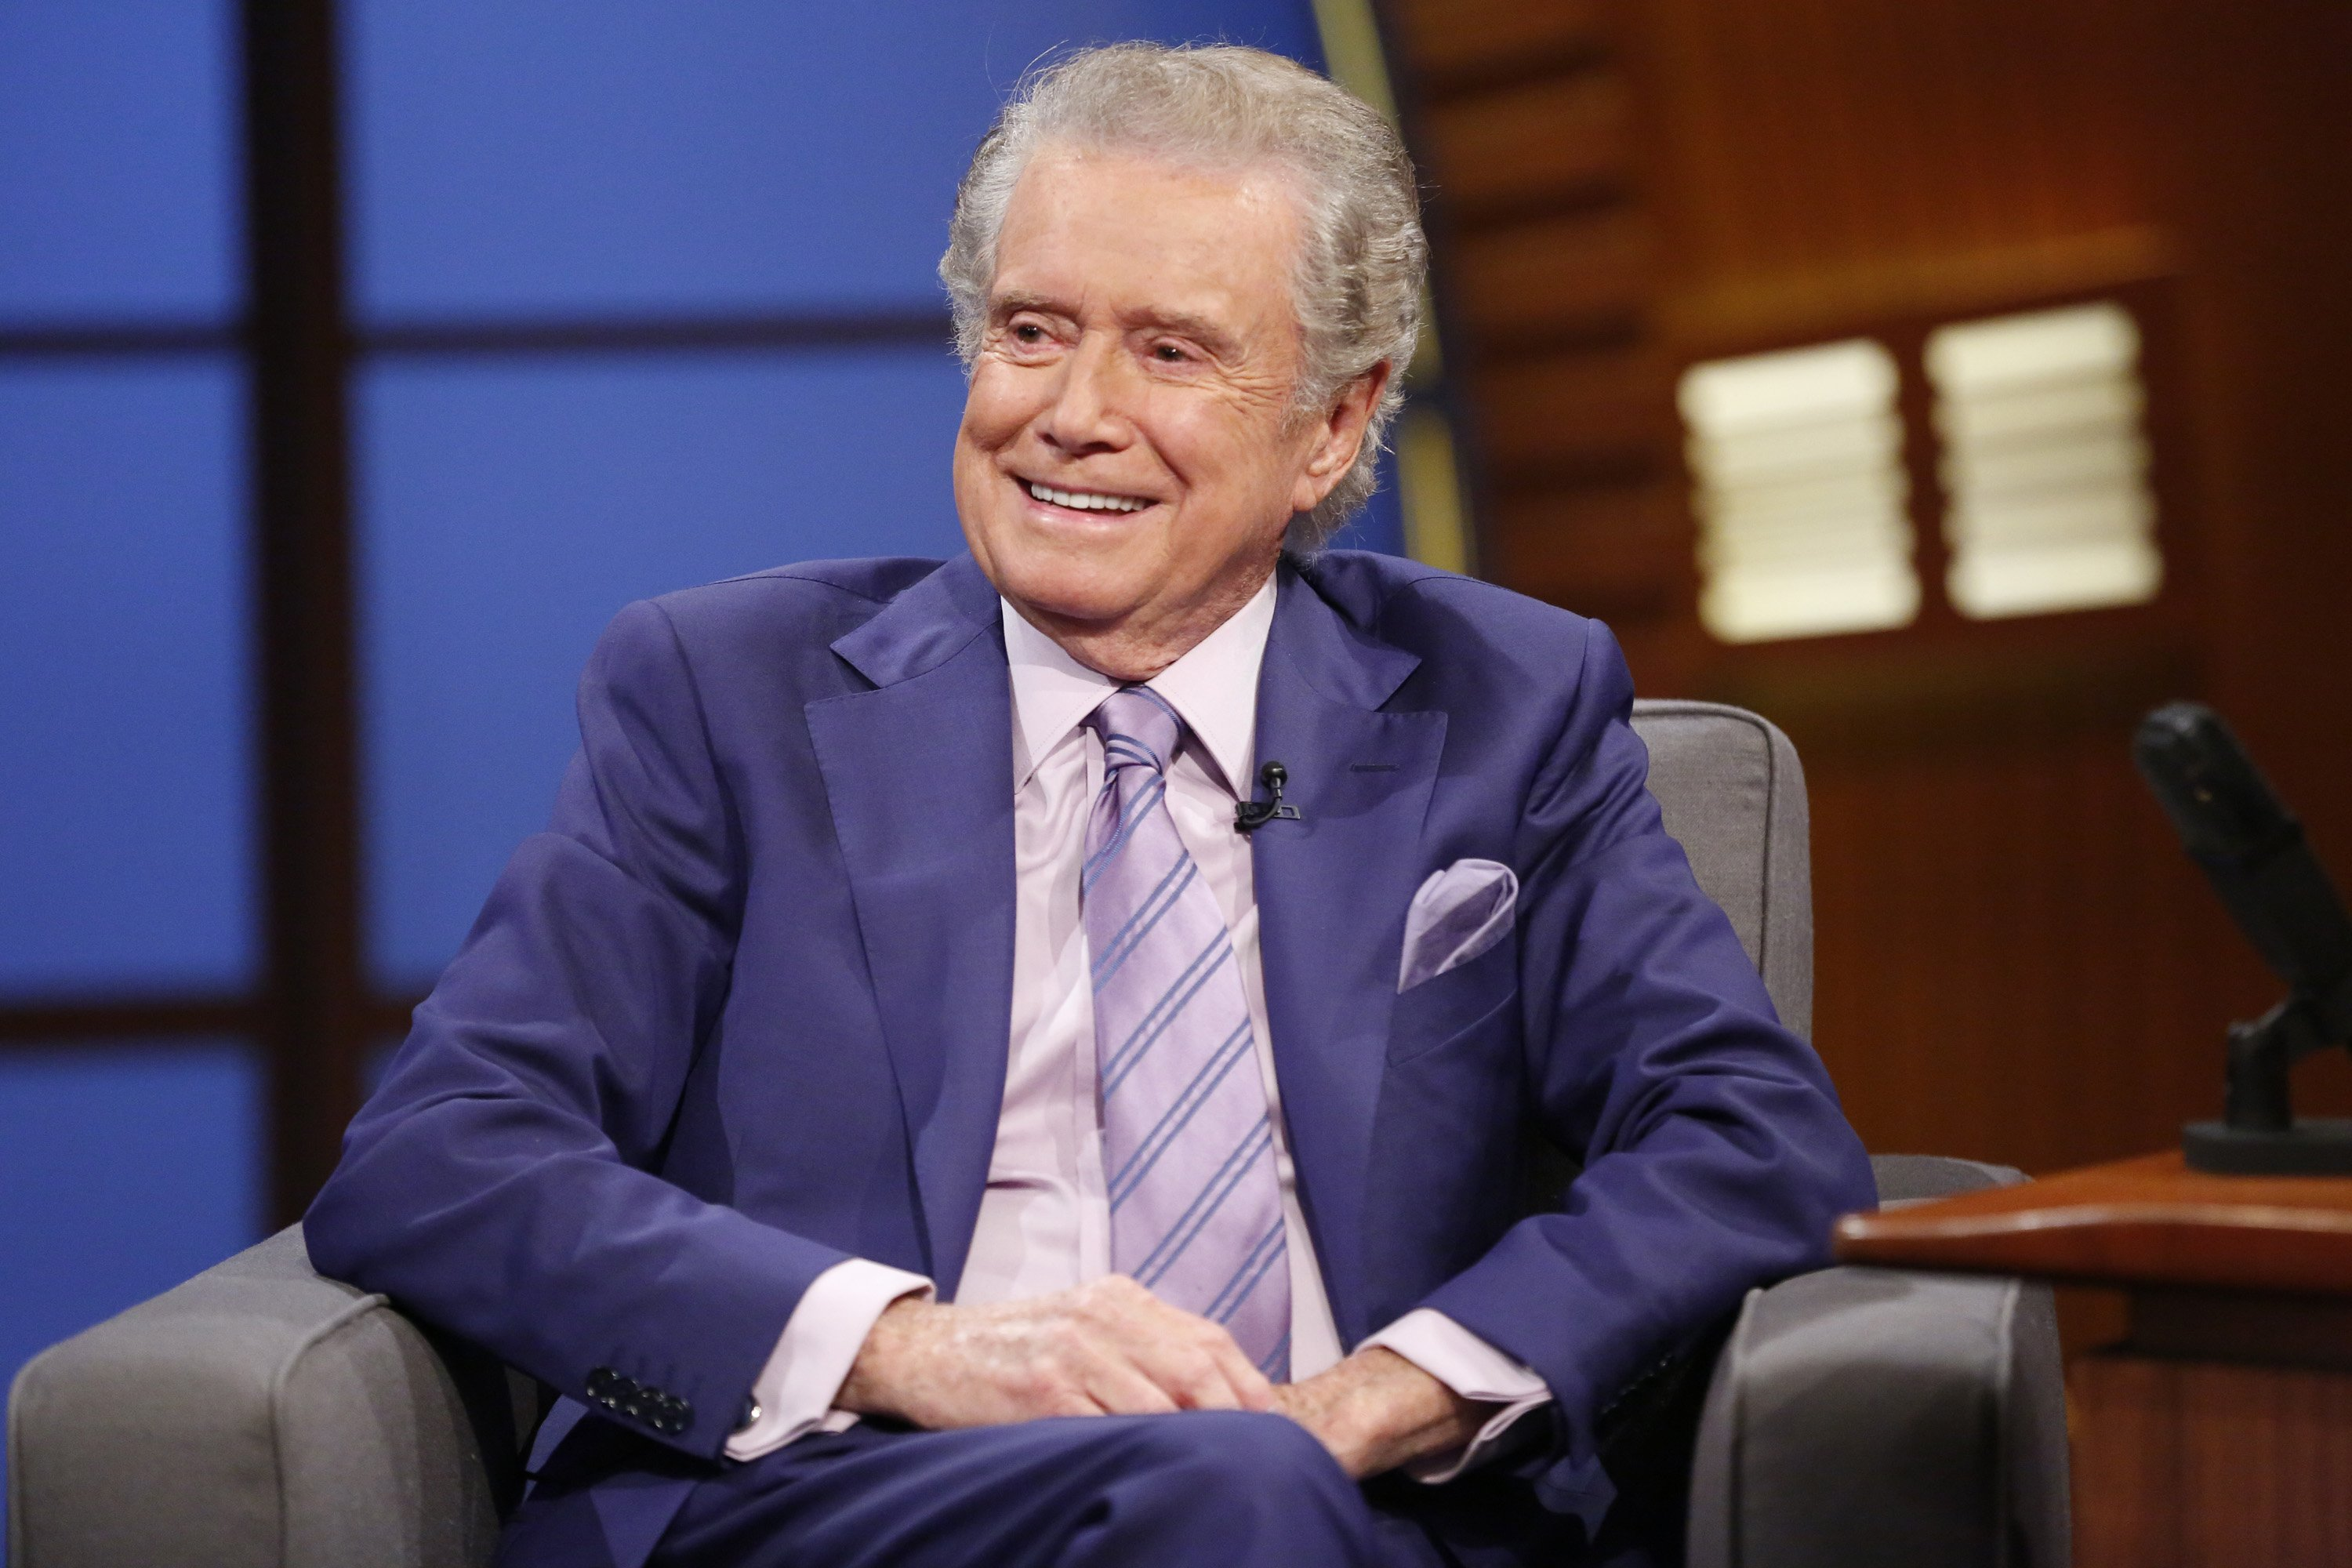 Image Credits: Getty Images | Even the great Regis had rough patches in his life